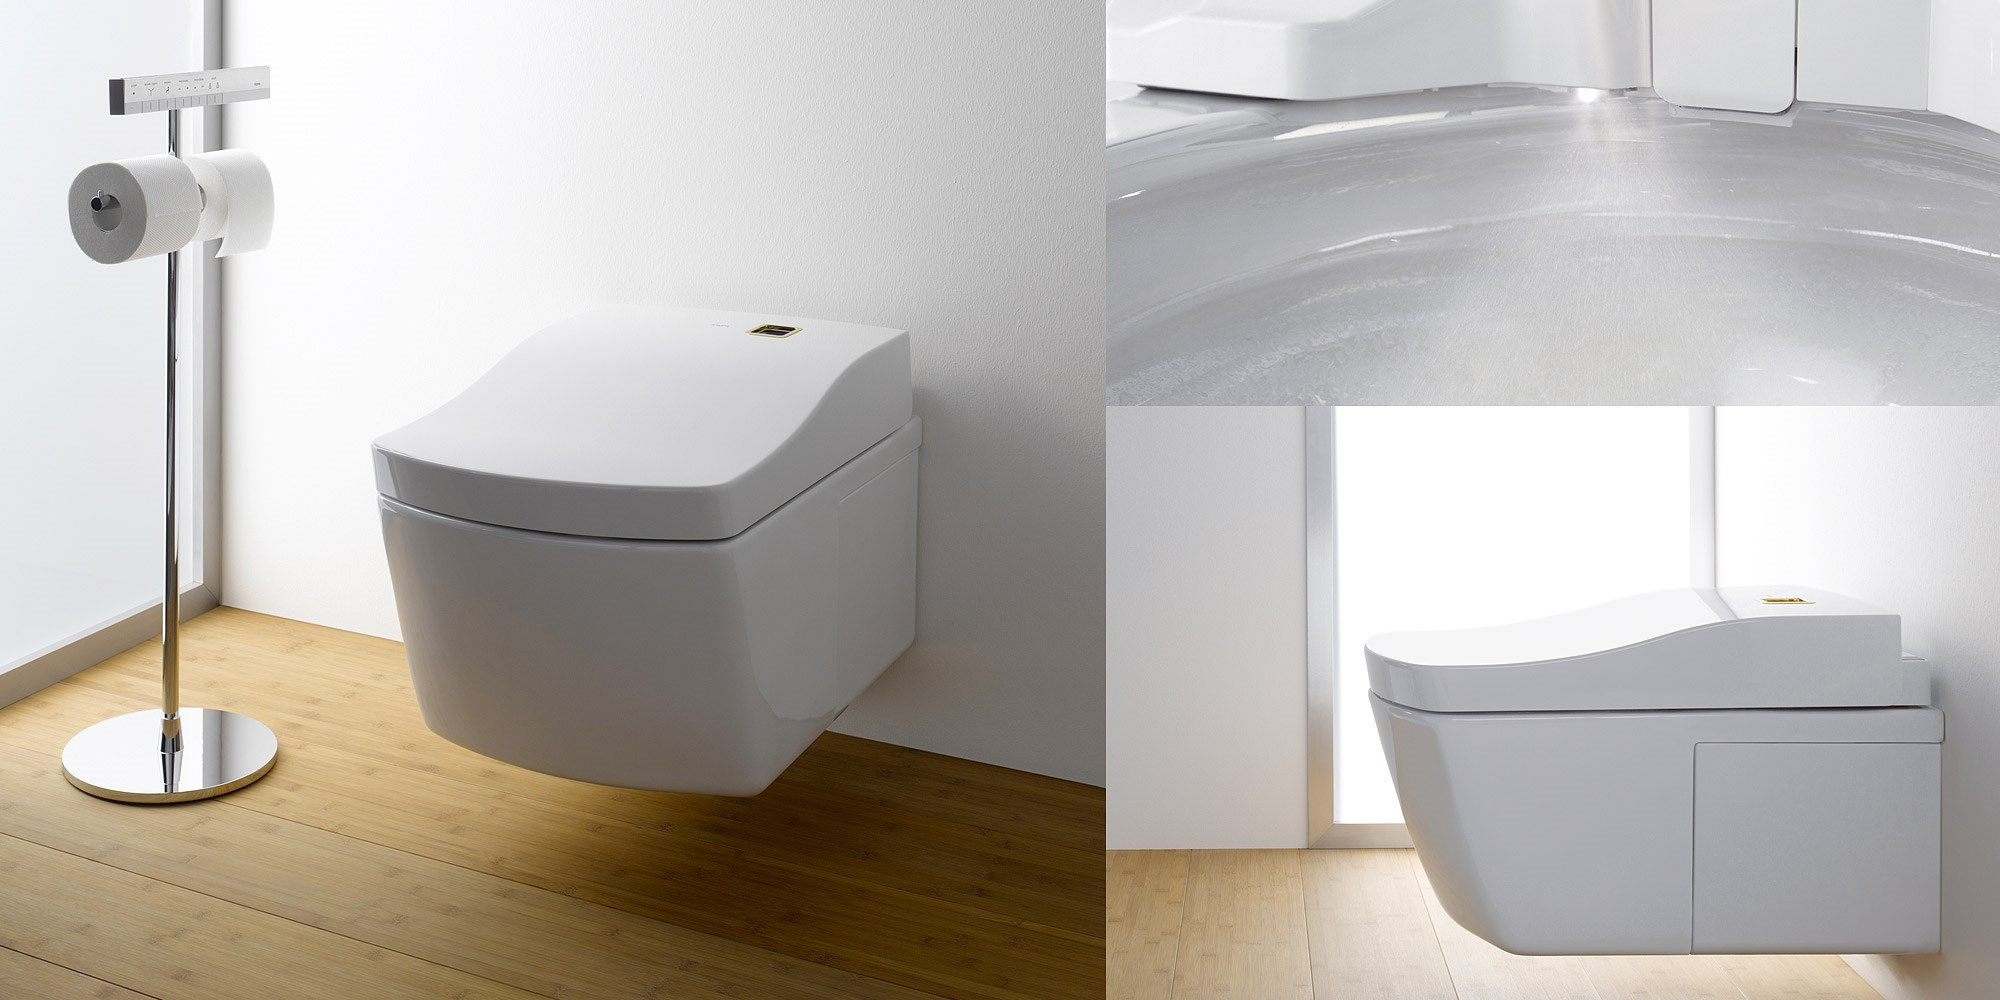 High quality sanitary ware by TOTO